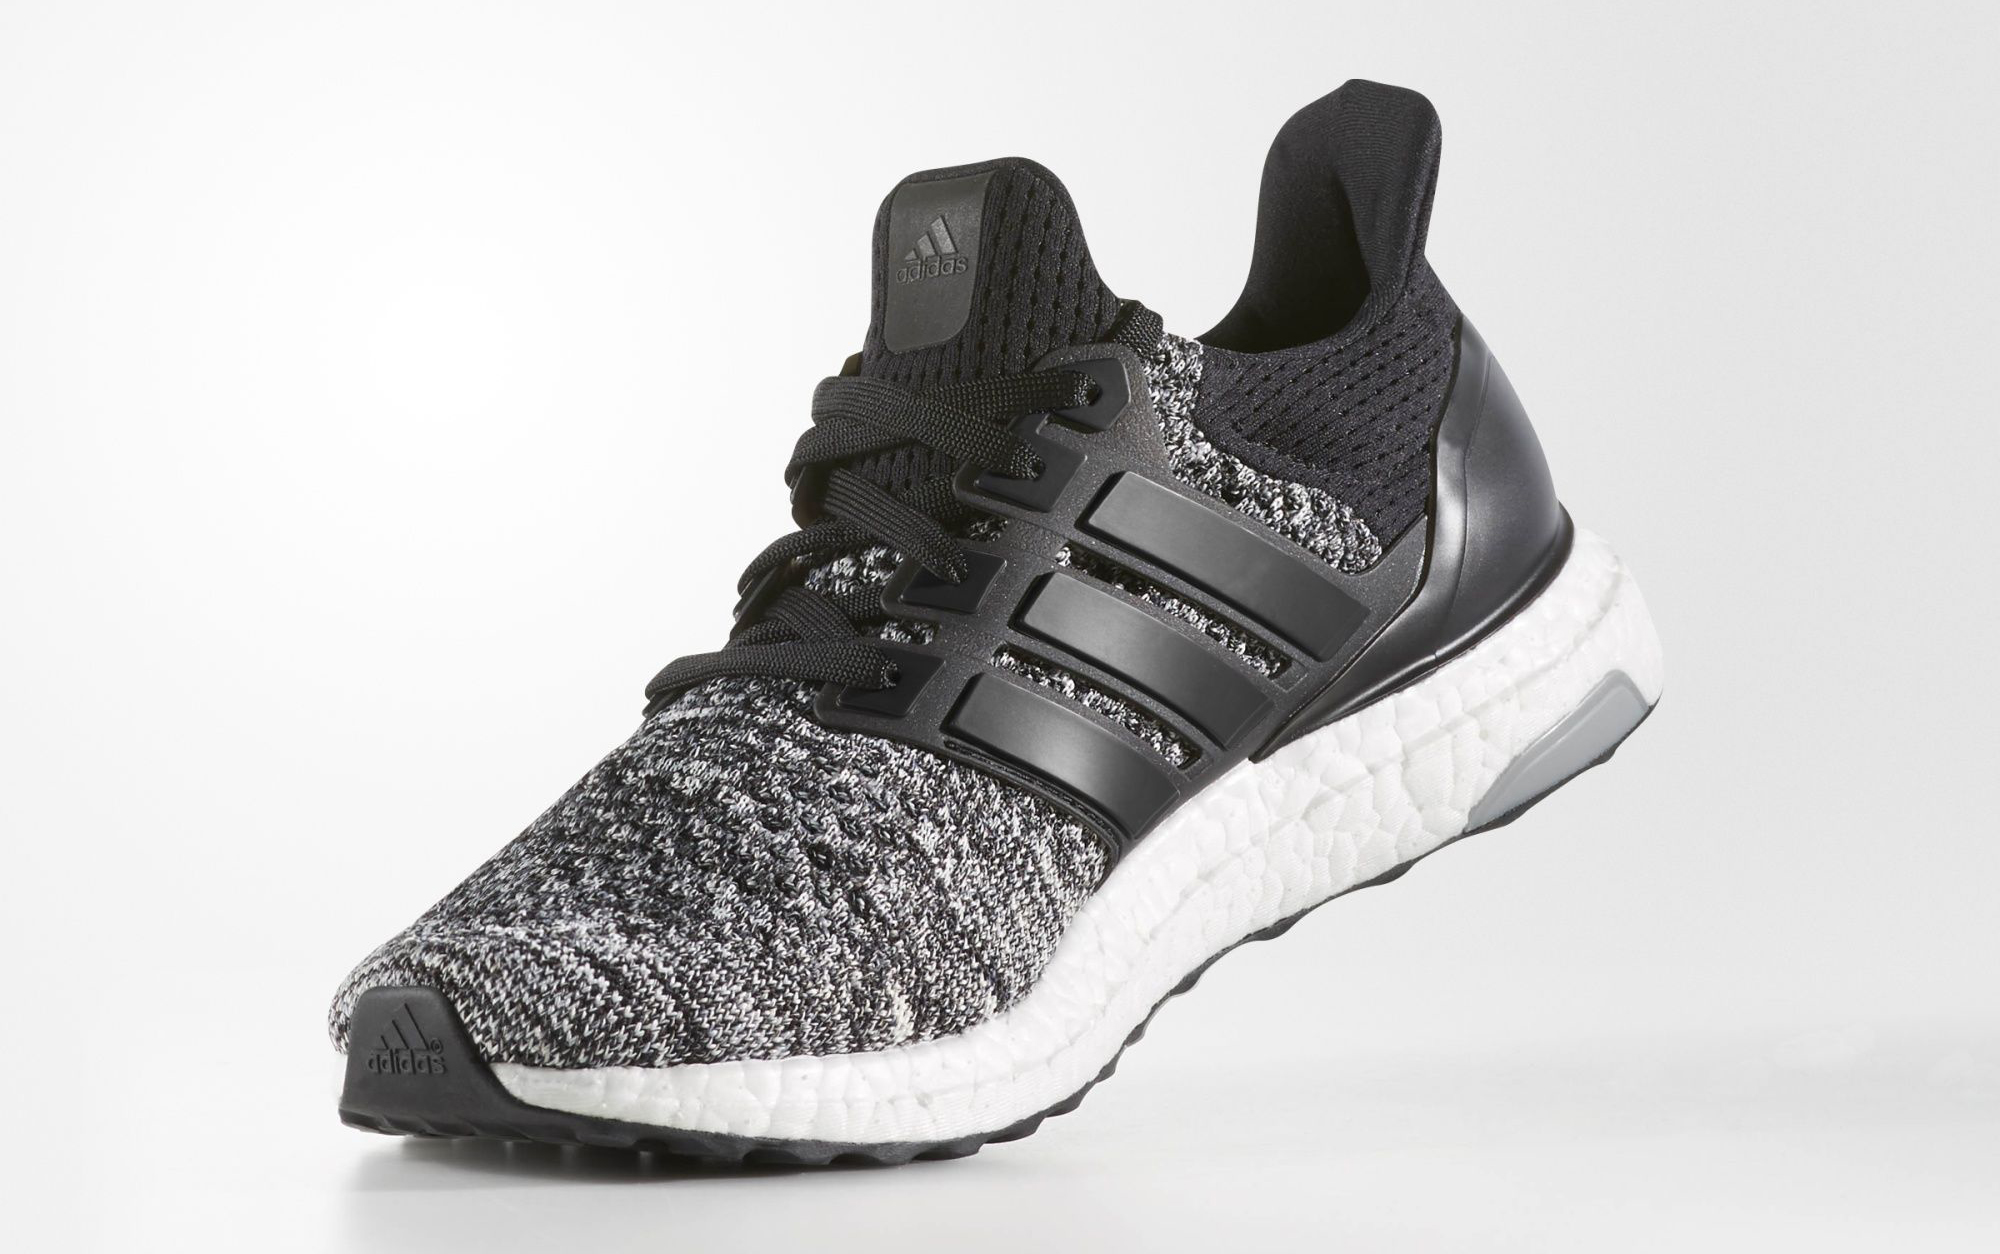 c8a7bad96a2 Image via Adidas Reigning Champ Adidas Ultra Boost B39254 Medial